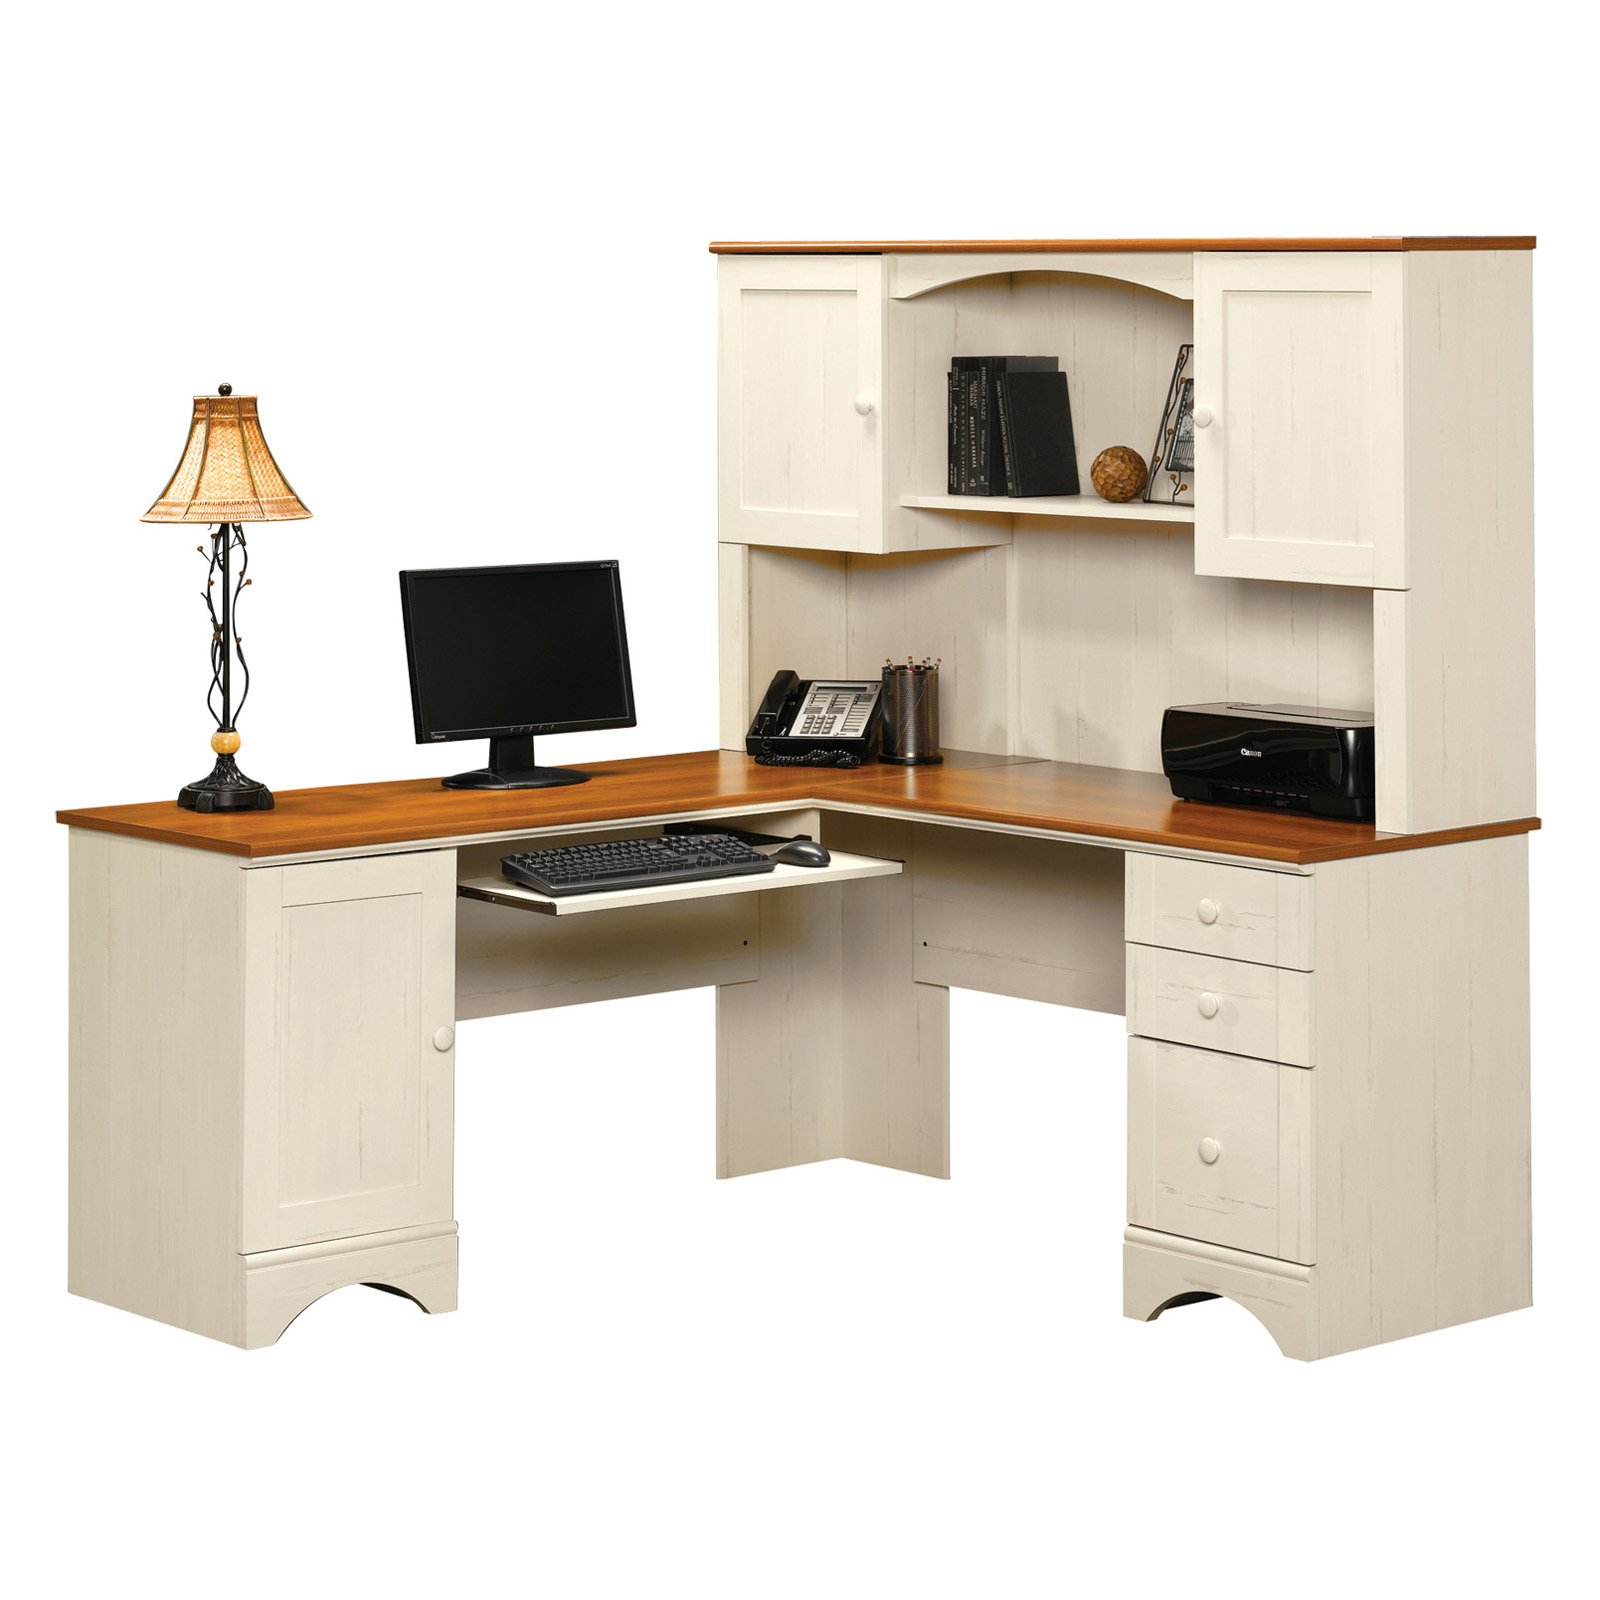 Sauder Beginnings Corner Computer Desk | Small Corner Desk with Hutch | Sauder Computer Desks